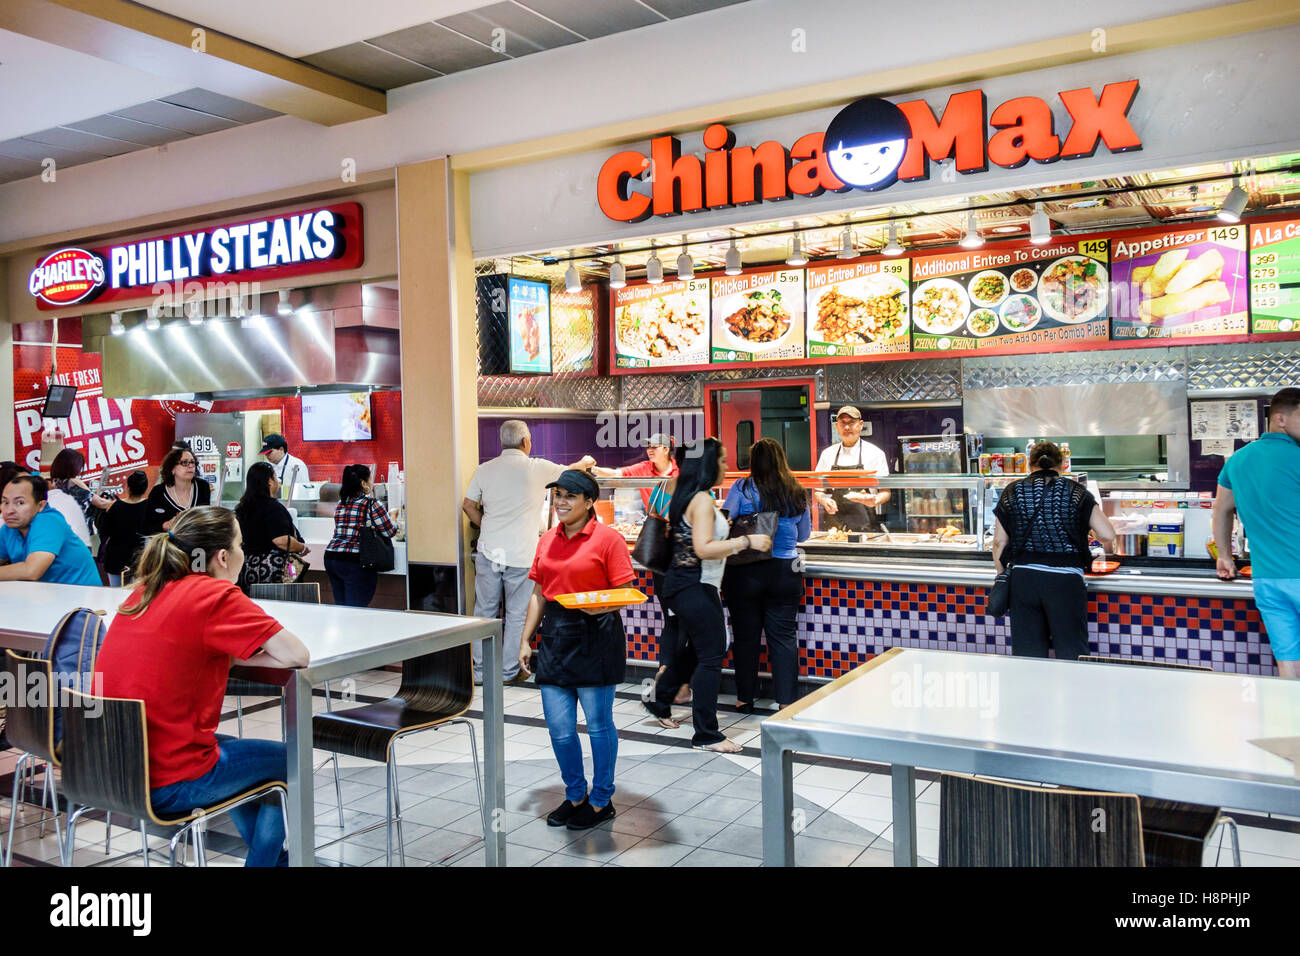 Aug 08, · Miami International Mall is a premiere family-friendly international shopping experience located in Doral, providing a gathering place for consumers to shop, dine and be entertained in a safe, comfortable environment.4/4().